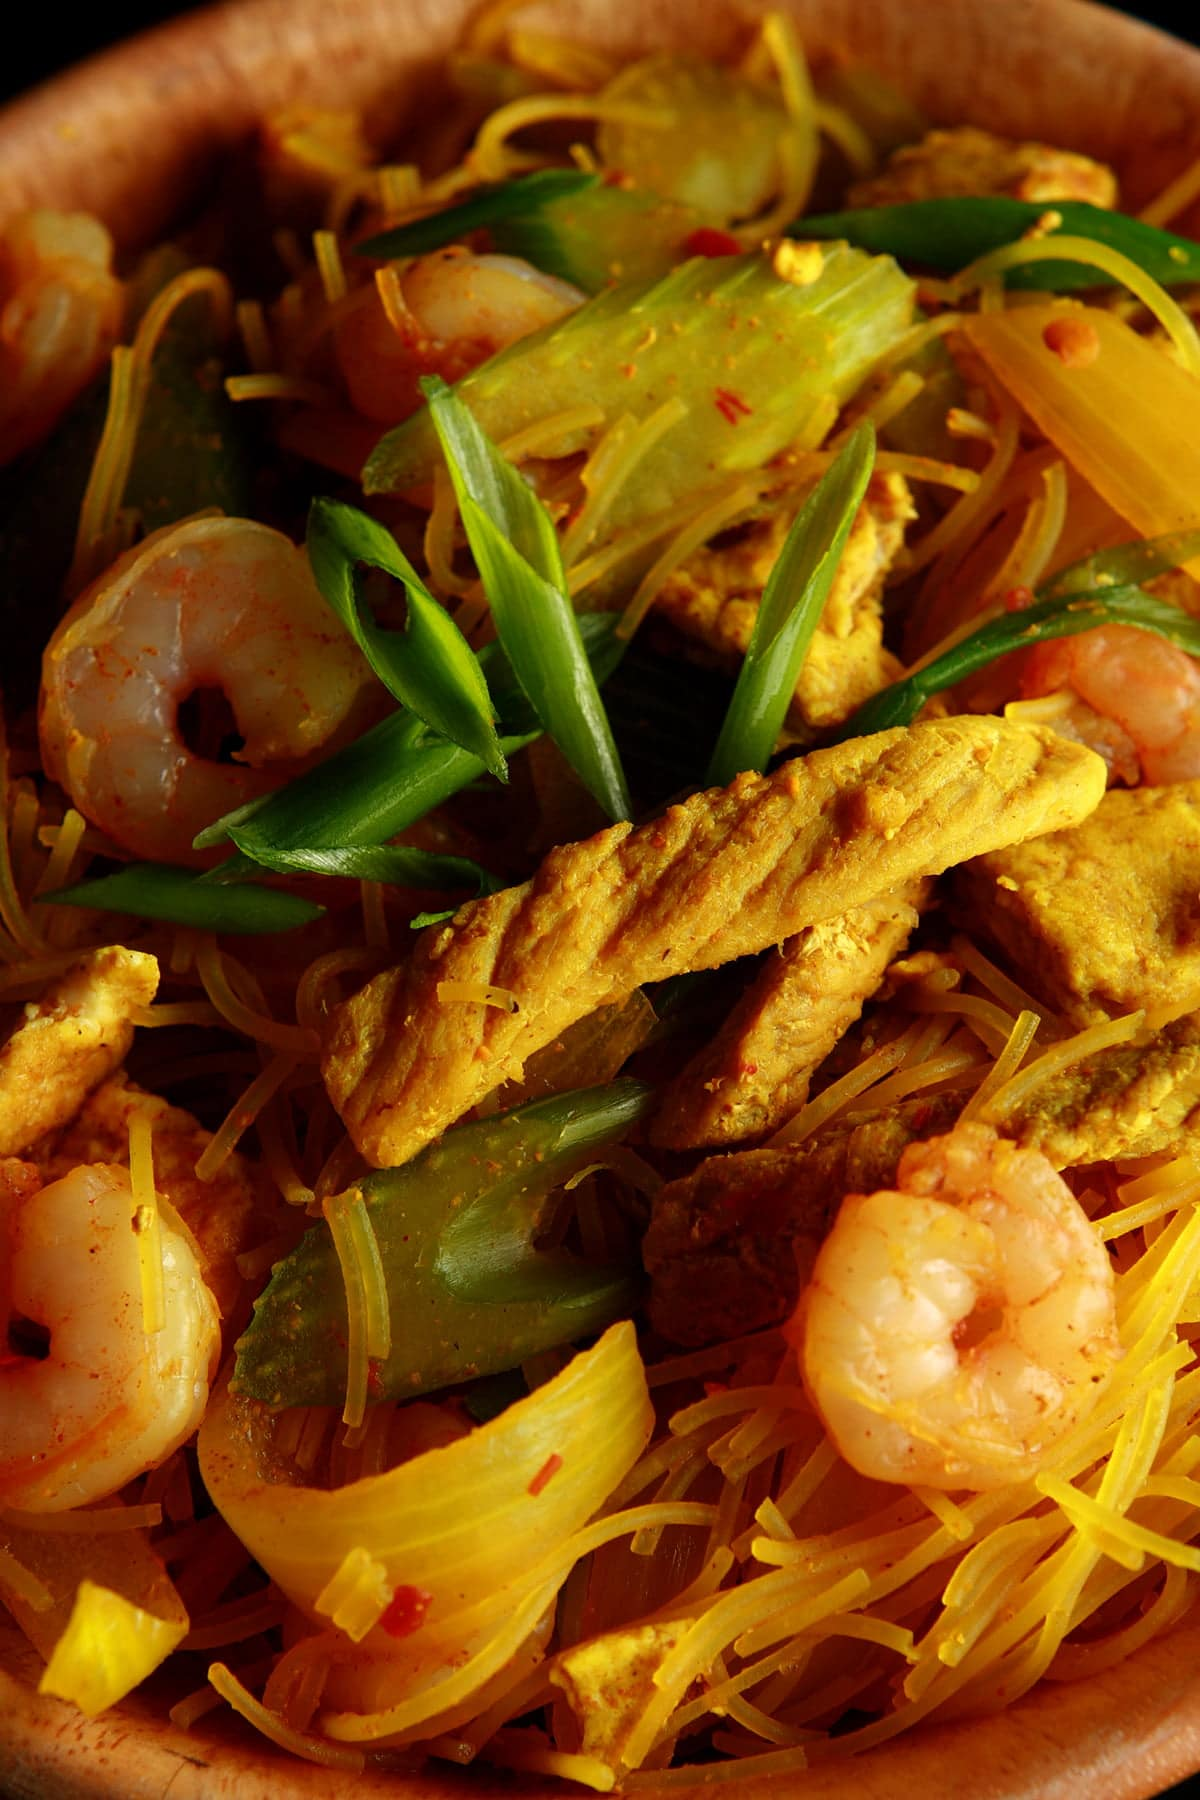 A large bowl of Singapore Mai Fun - curried vermacelli noodles with onion, celery, chicken, and shrimp visible throughout.